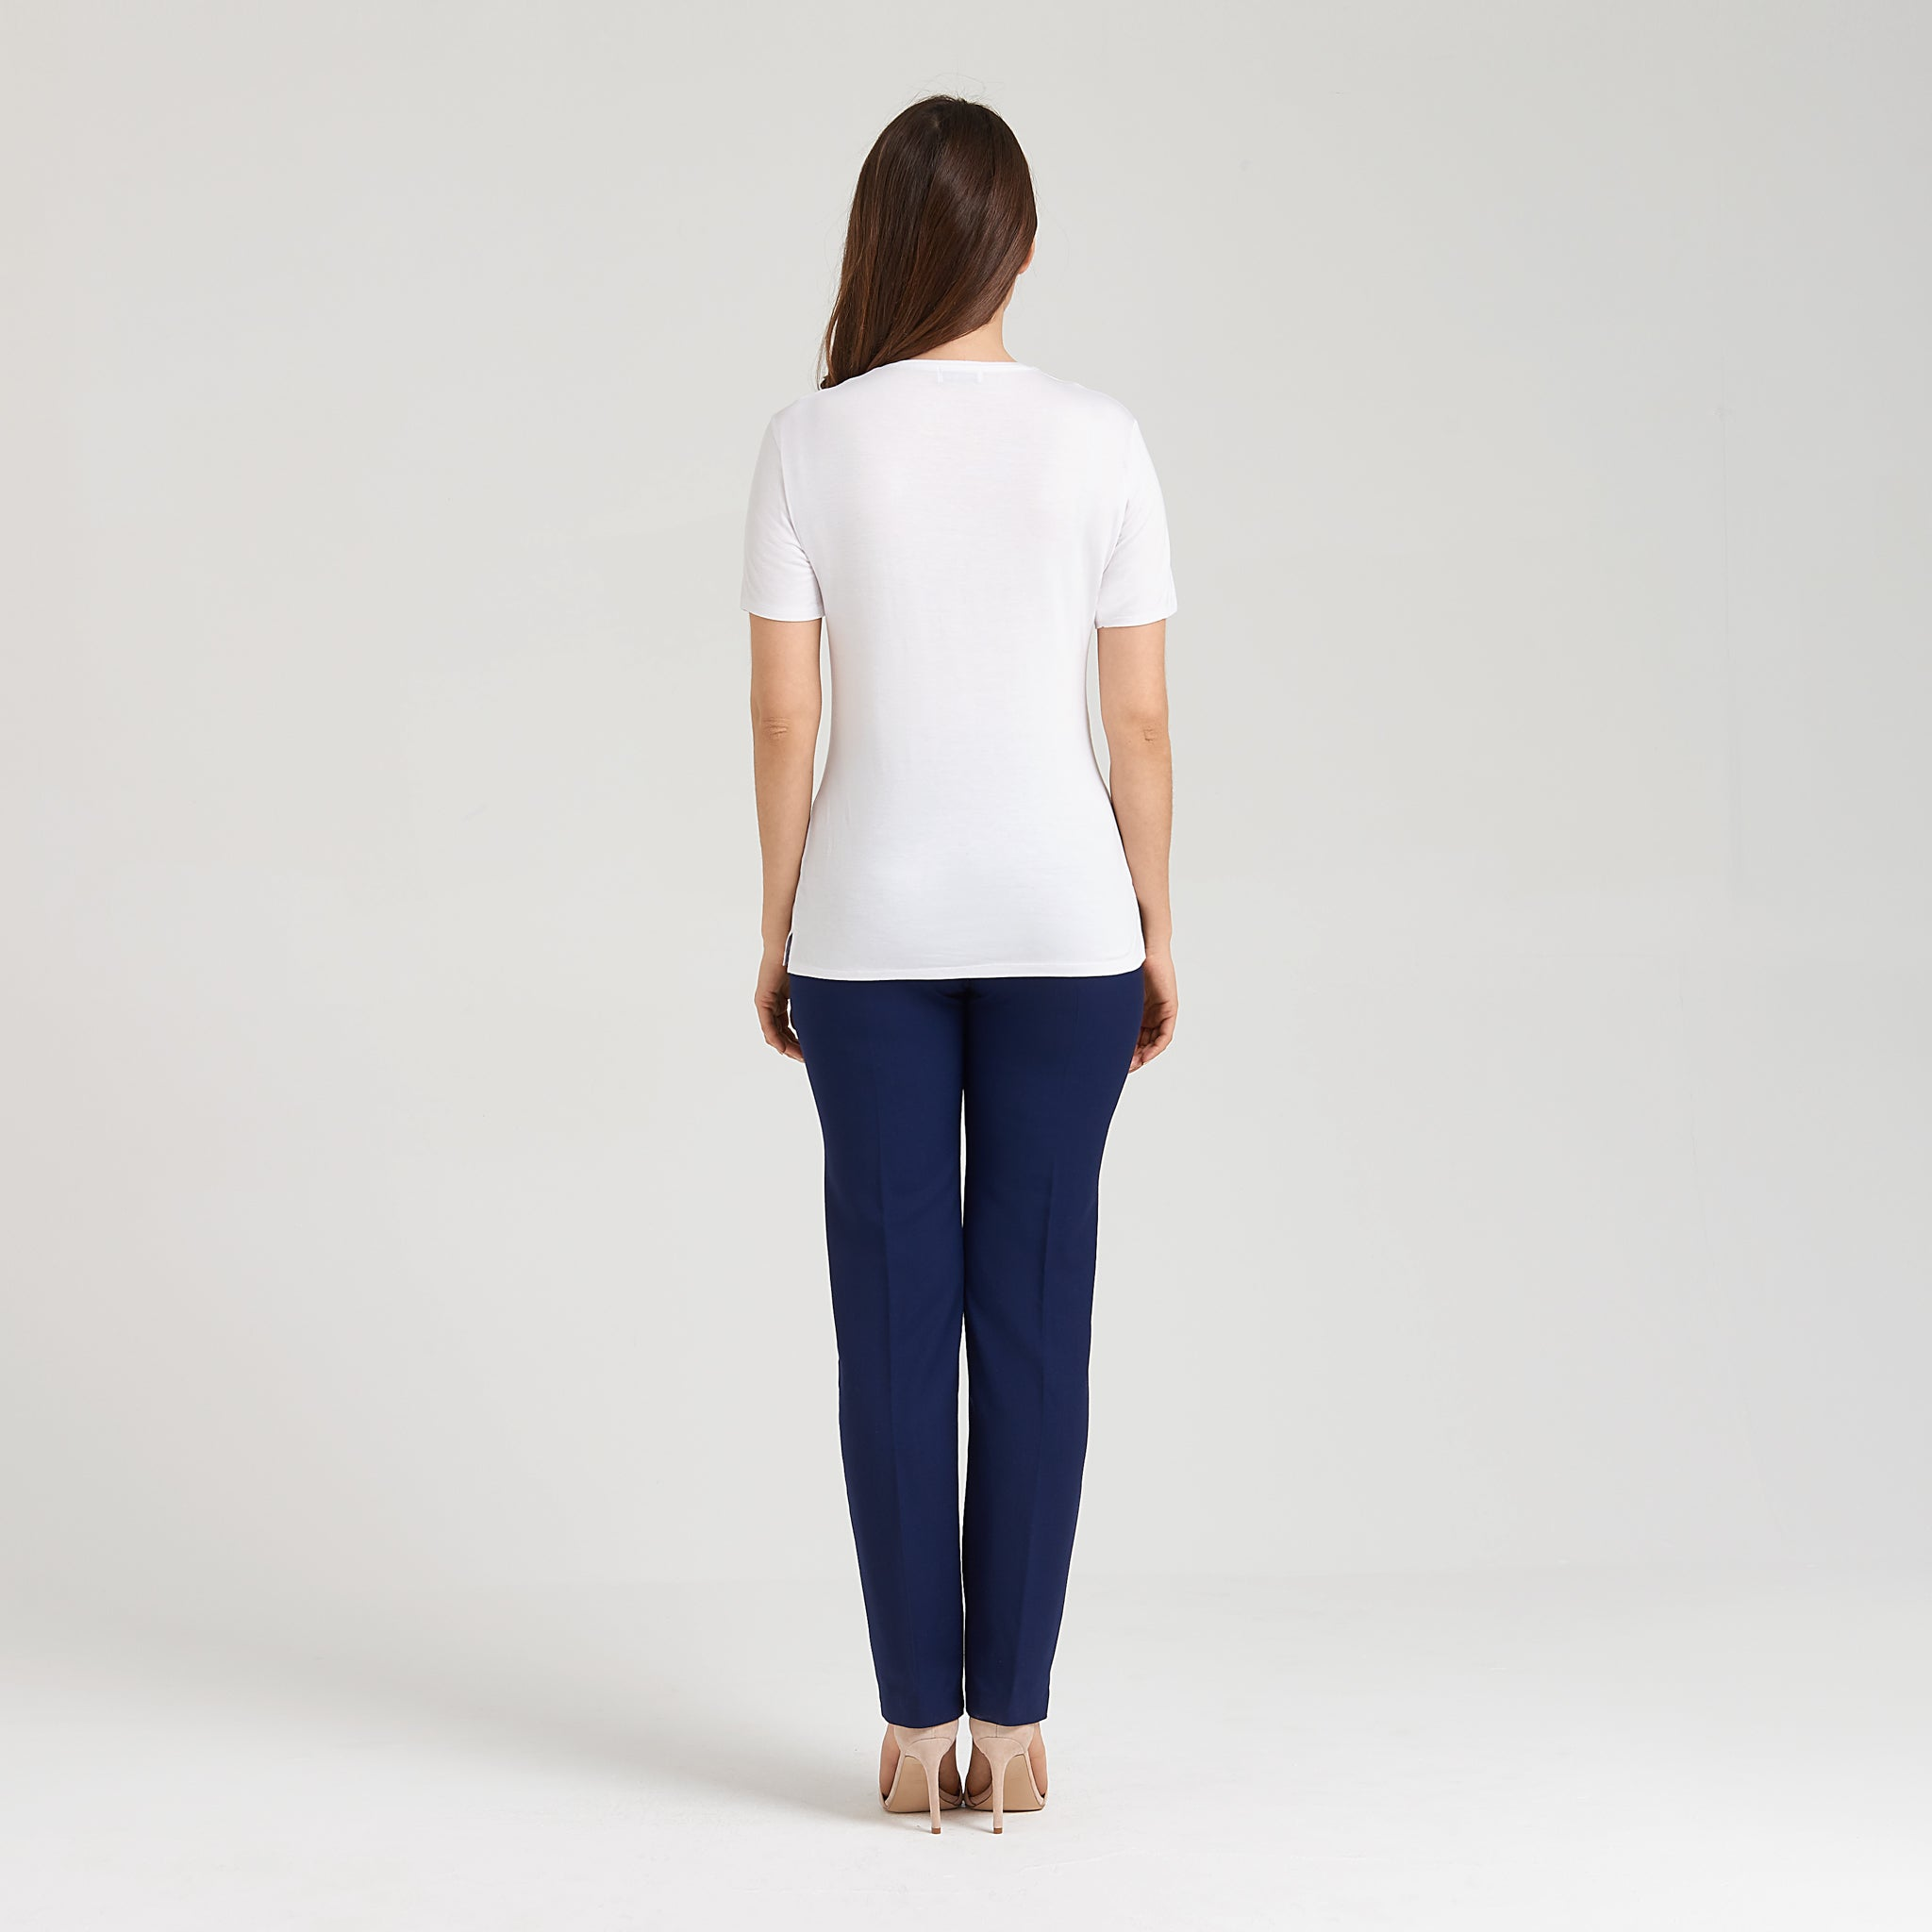 White short-sleeve t-shirt made of thermo-regulating bamboo